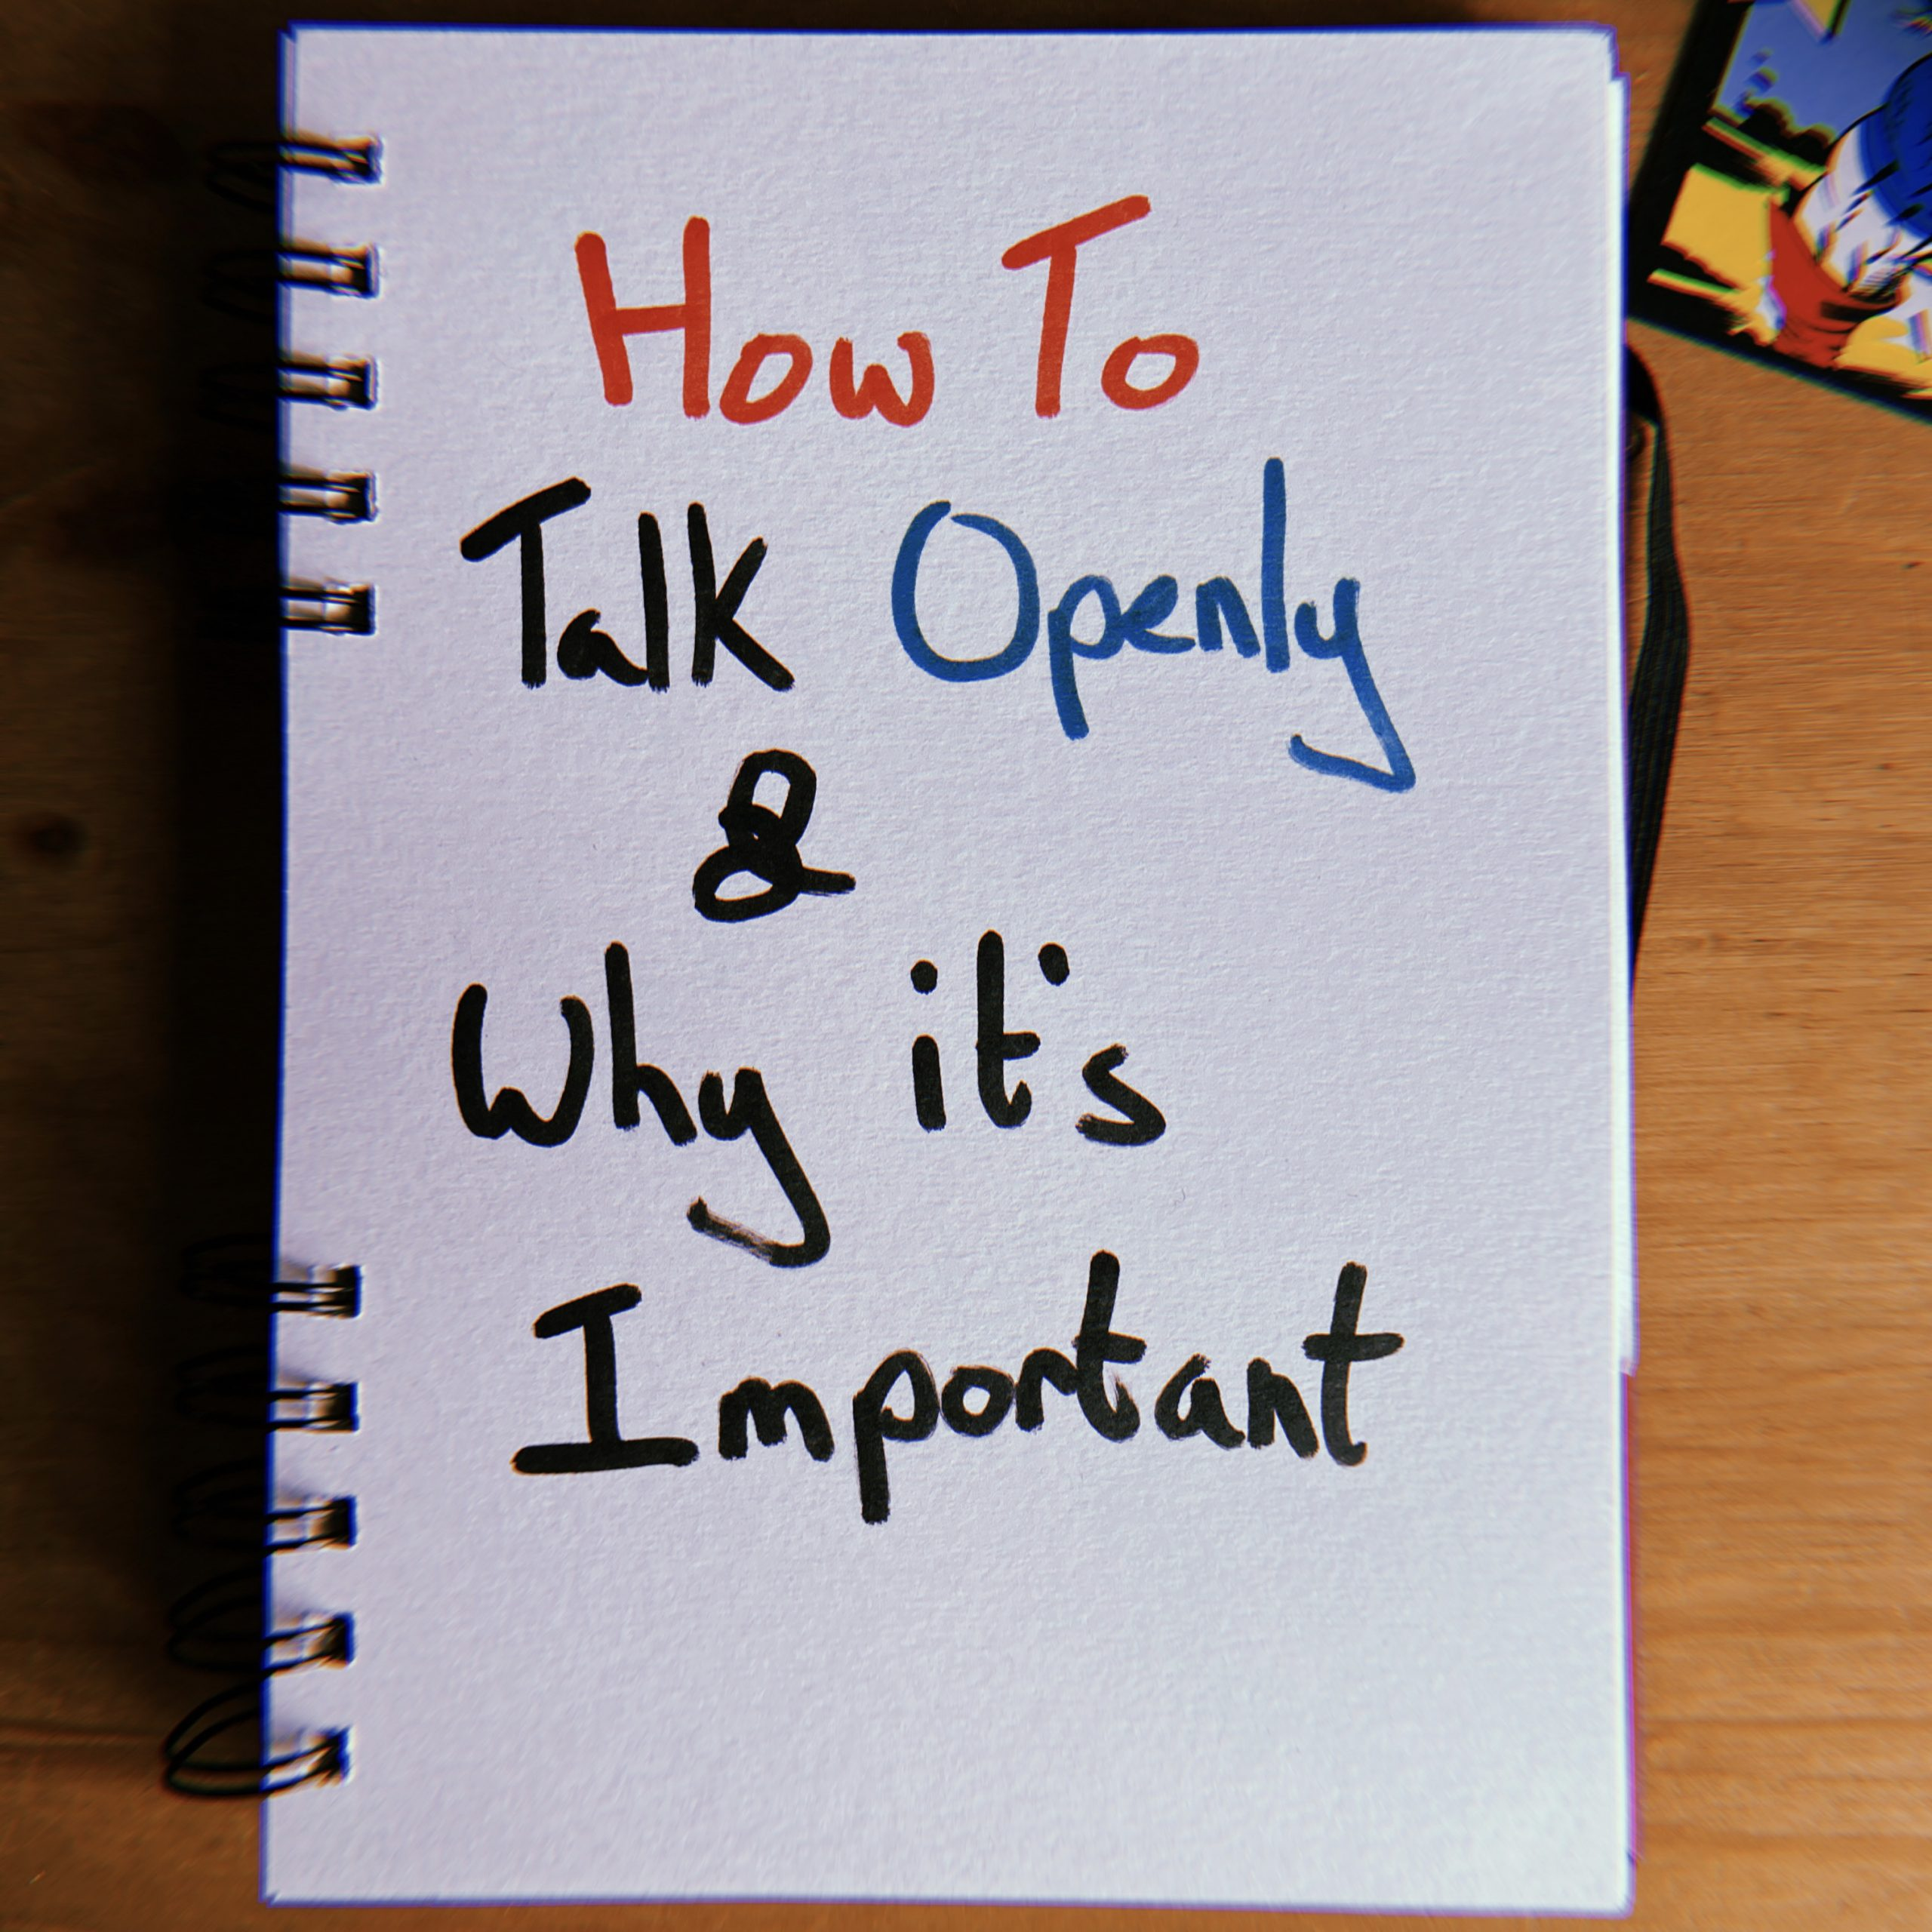 How To Talk Openly and Why It's Important